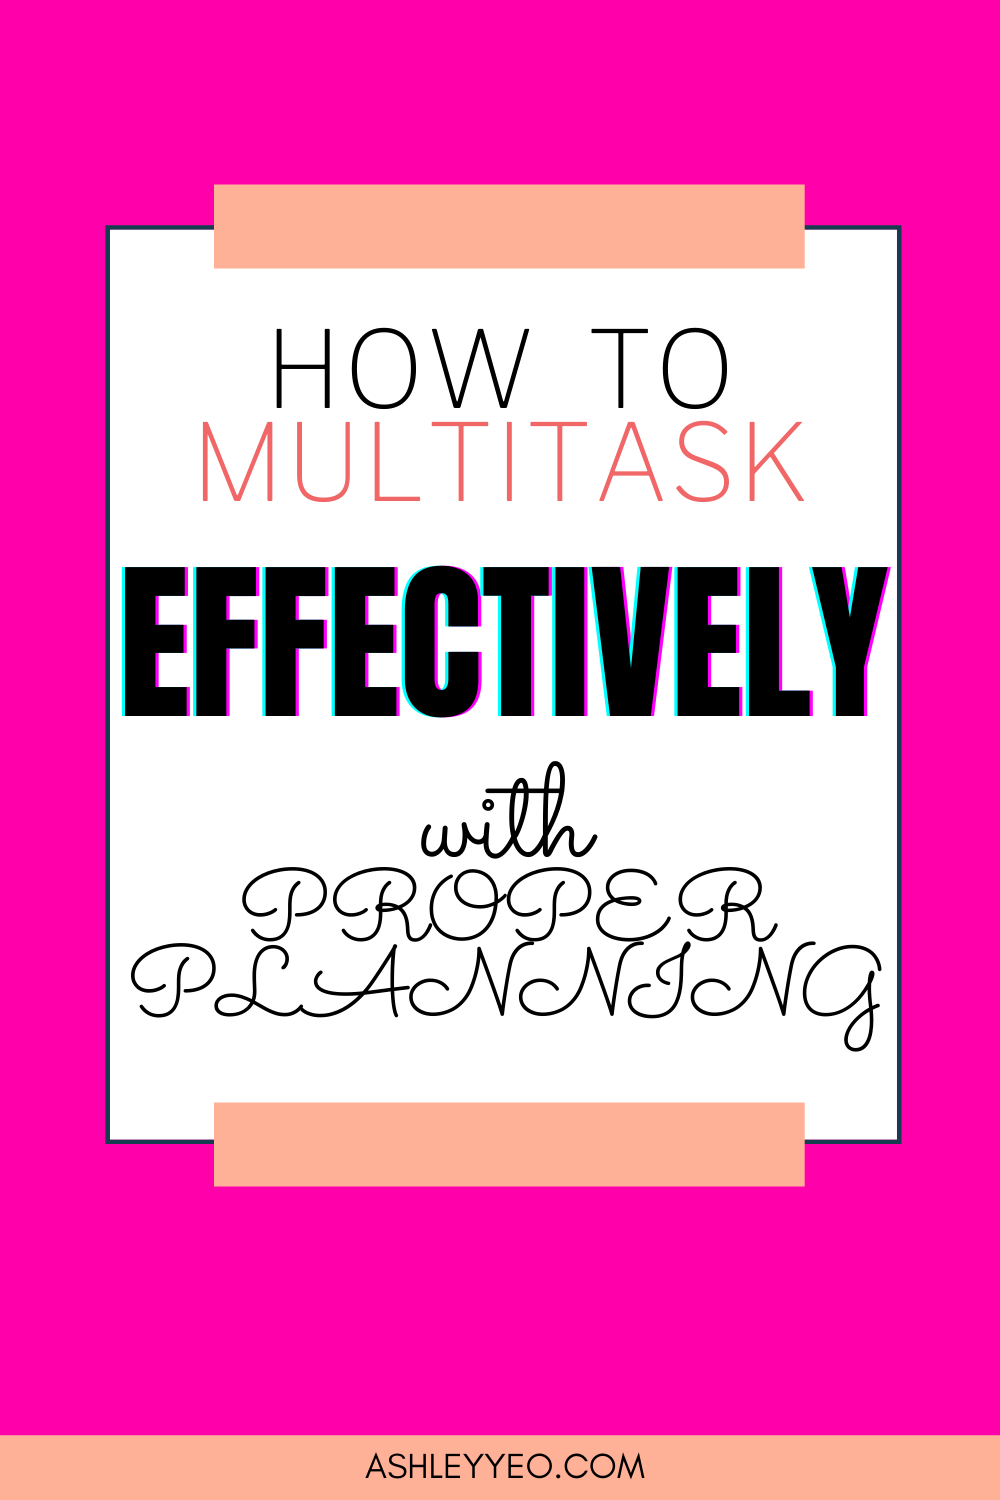 How To Multitask